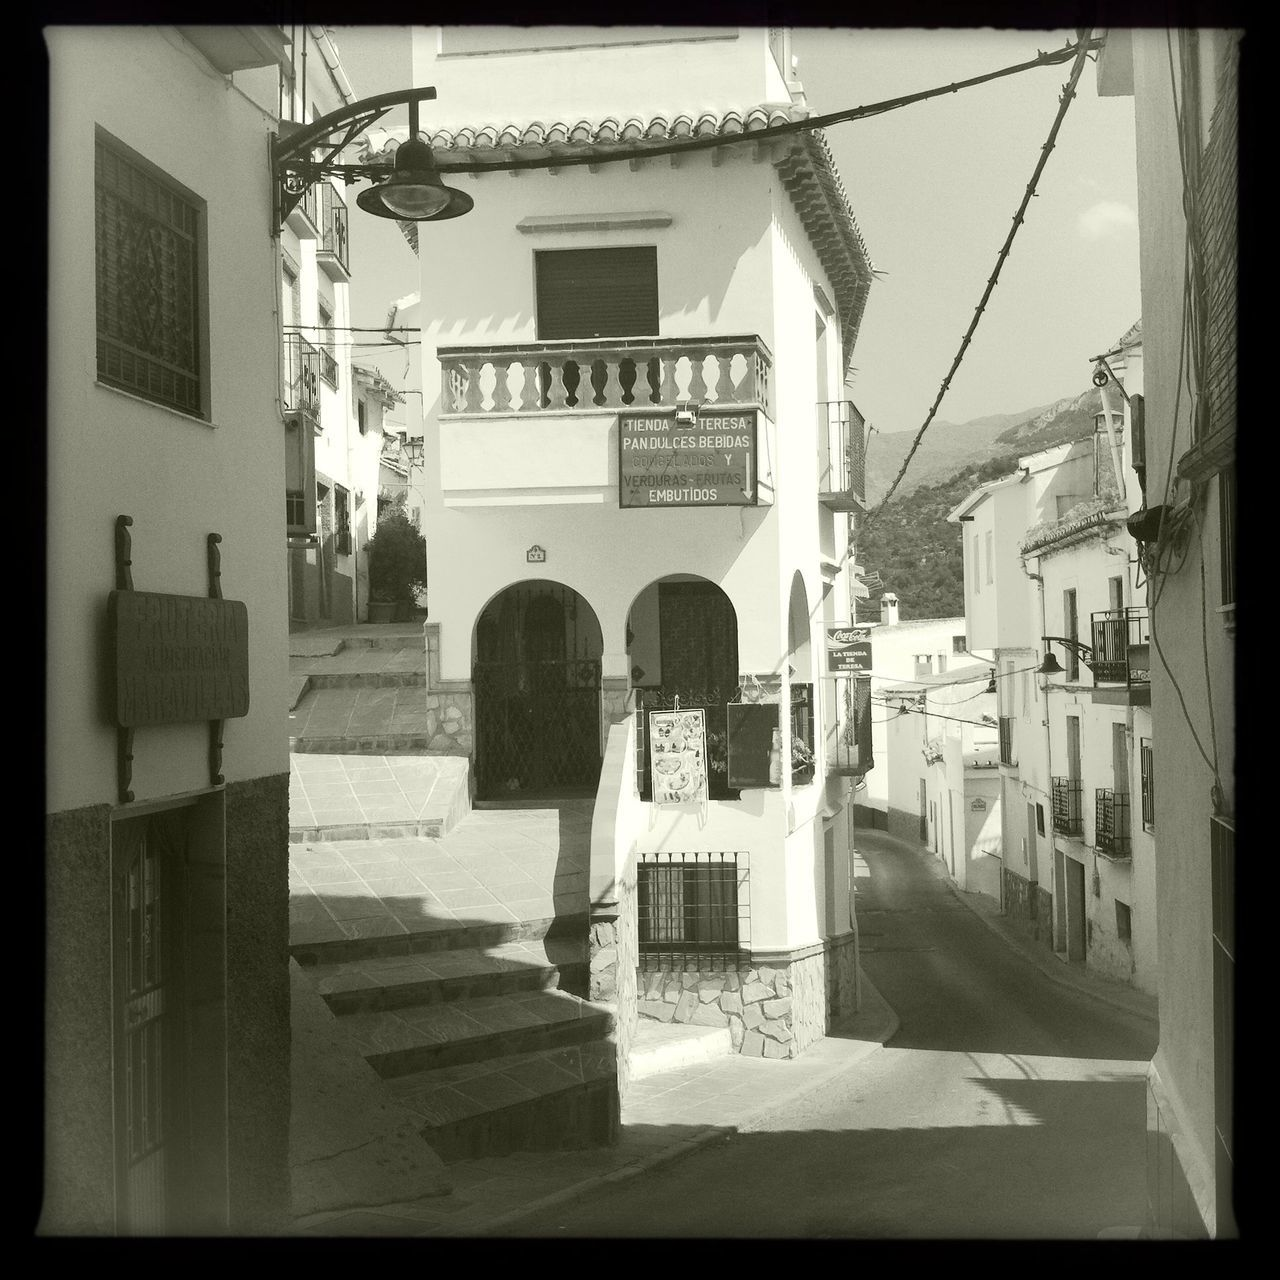 Village Building Exterior Architecture Outdoors White Town Quiet Town Andalucia Spain Granada, Spain